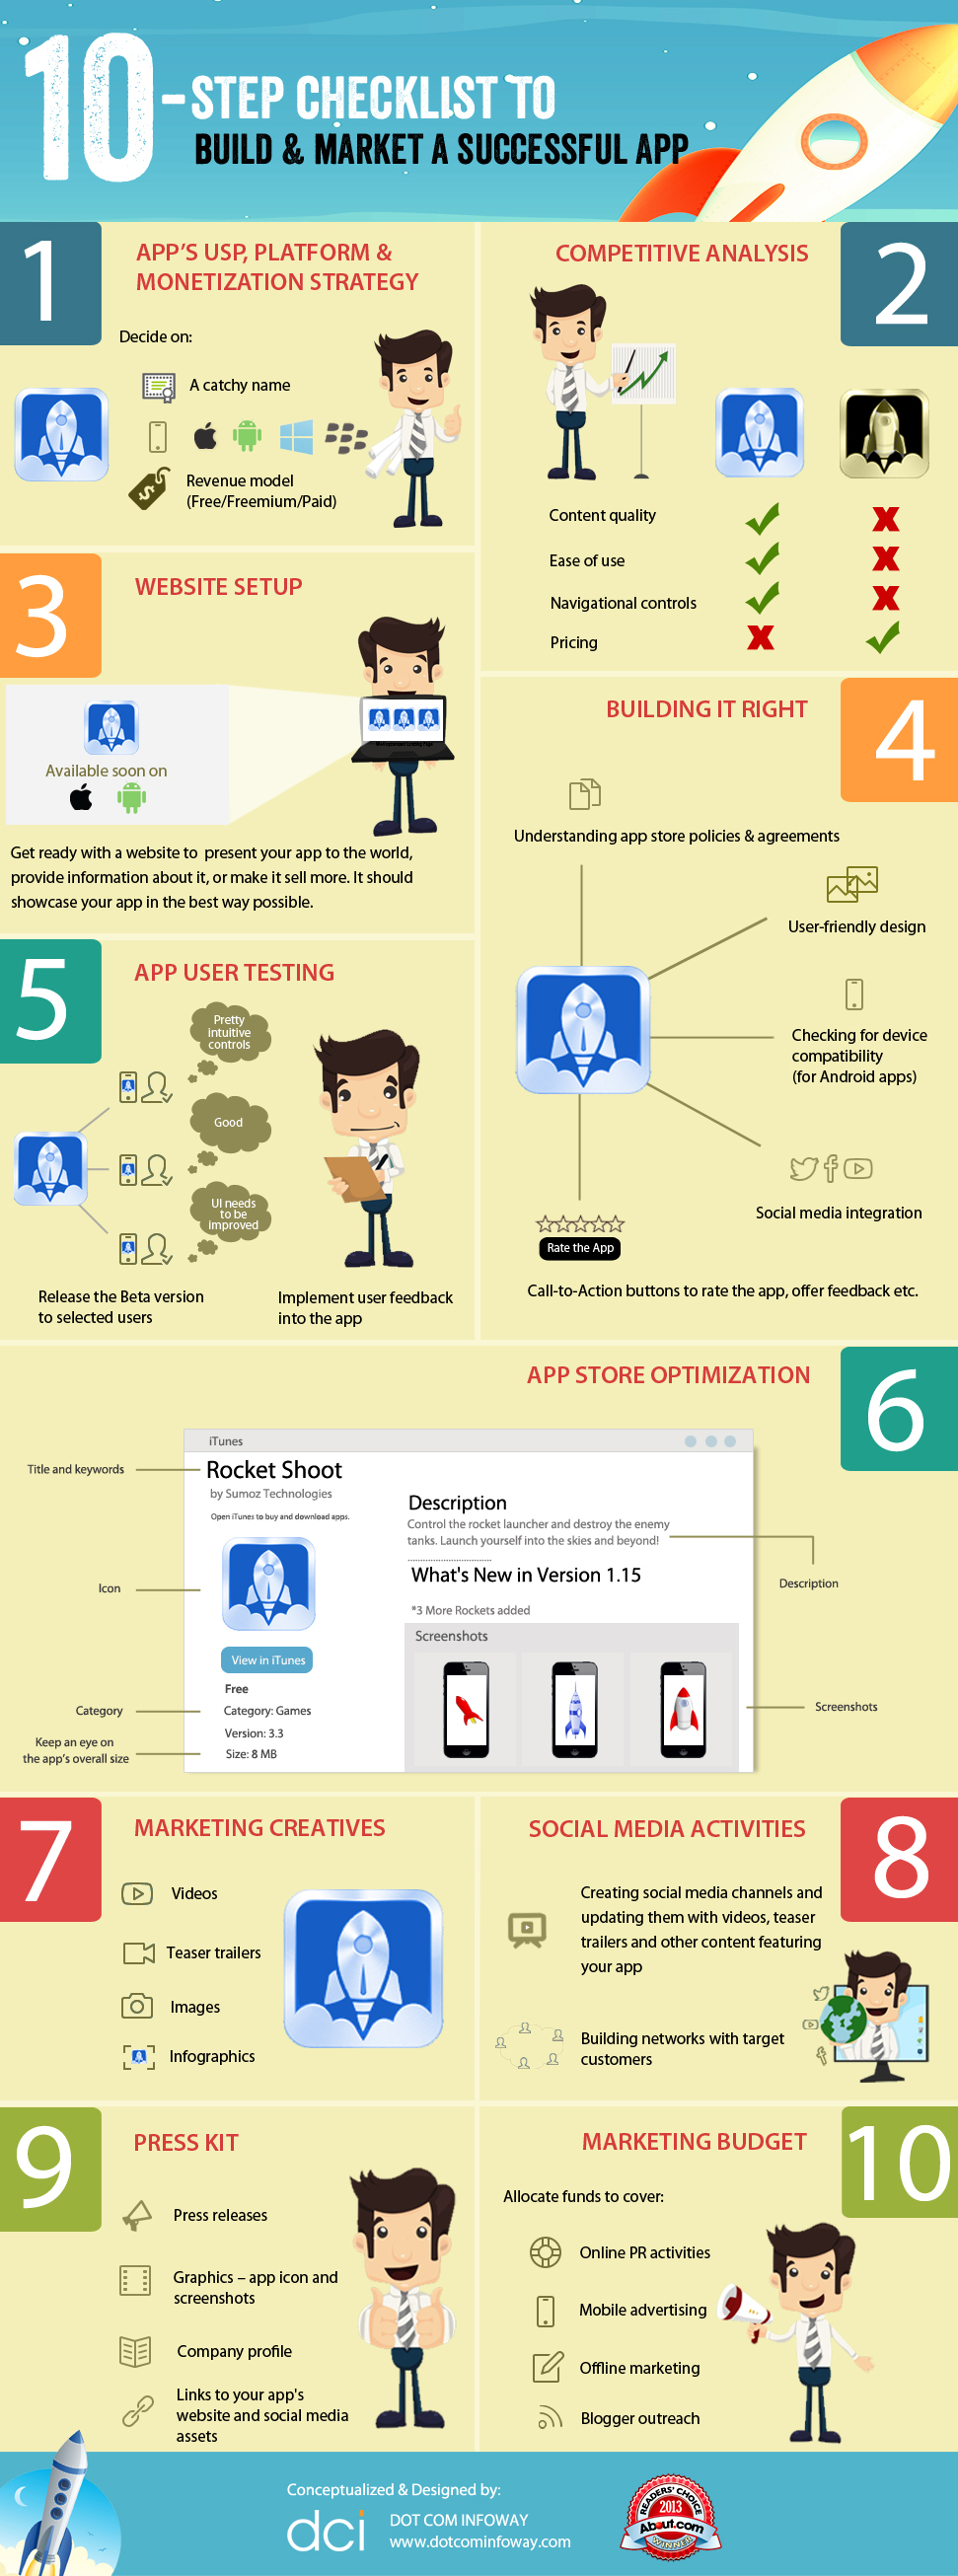 10-Step Checklist to Build & Market a Successful App Infographic